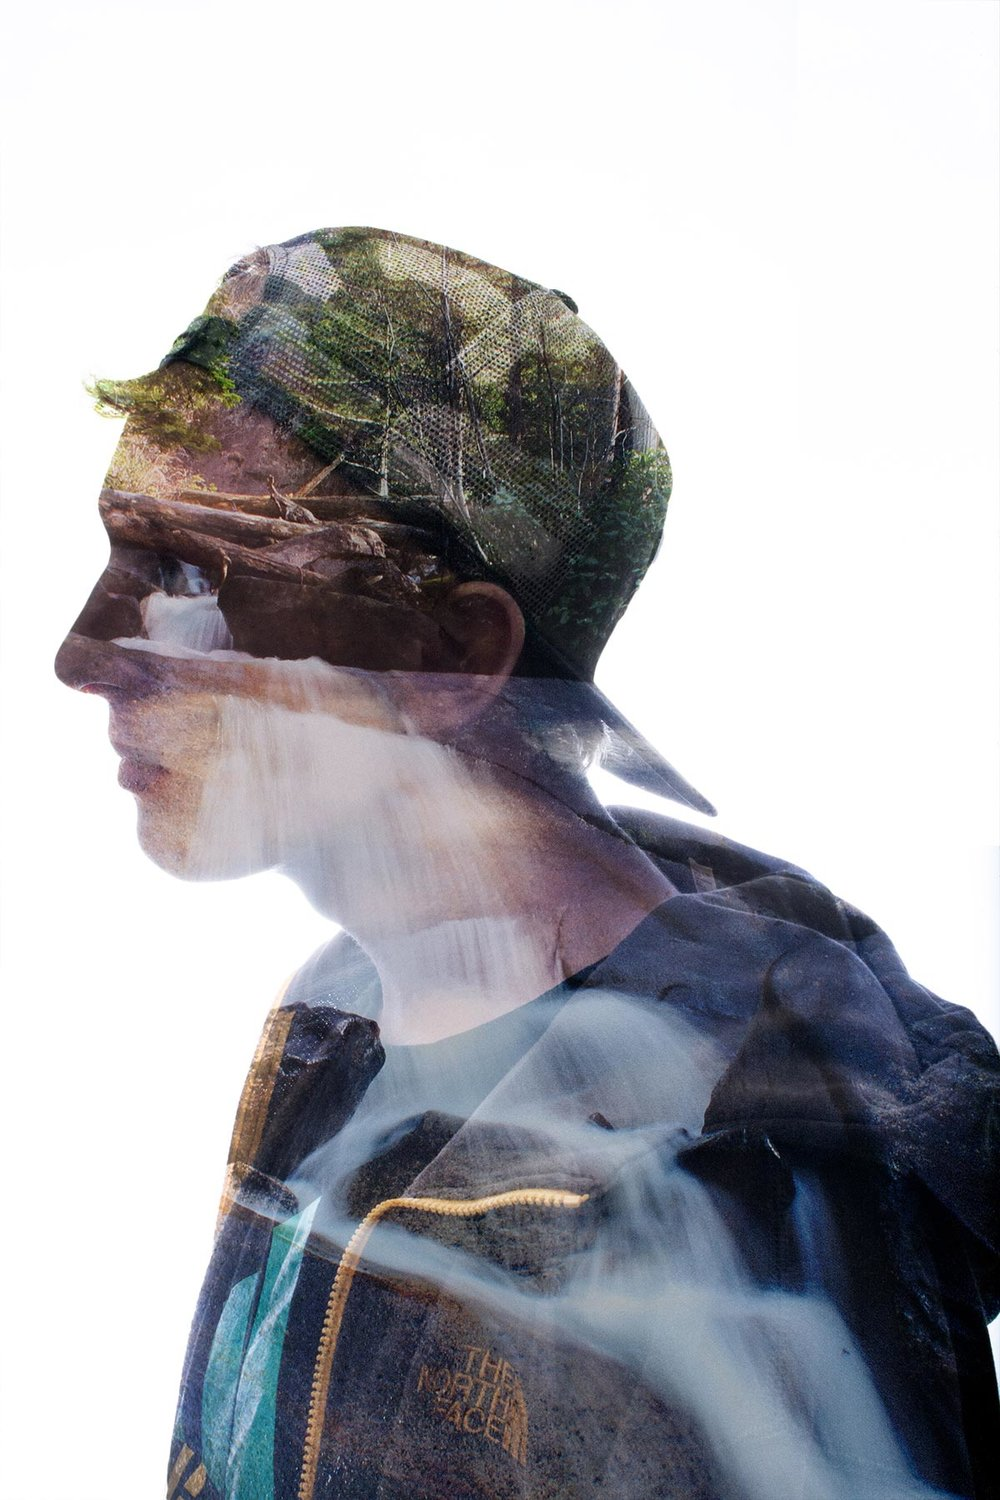 will-MultipleExposure.jpg